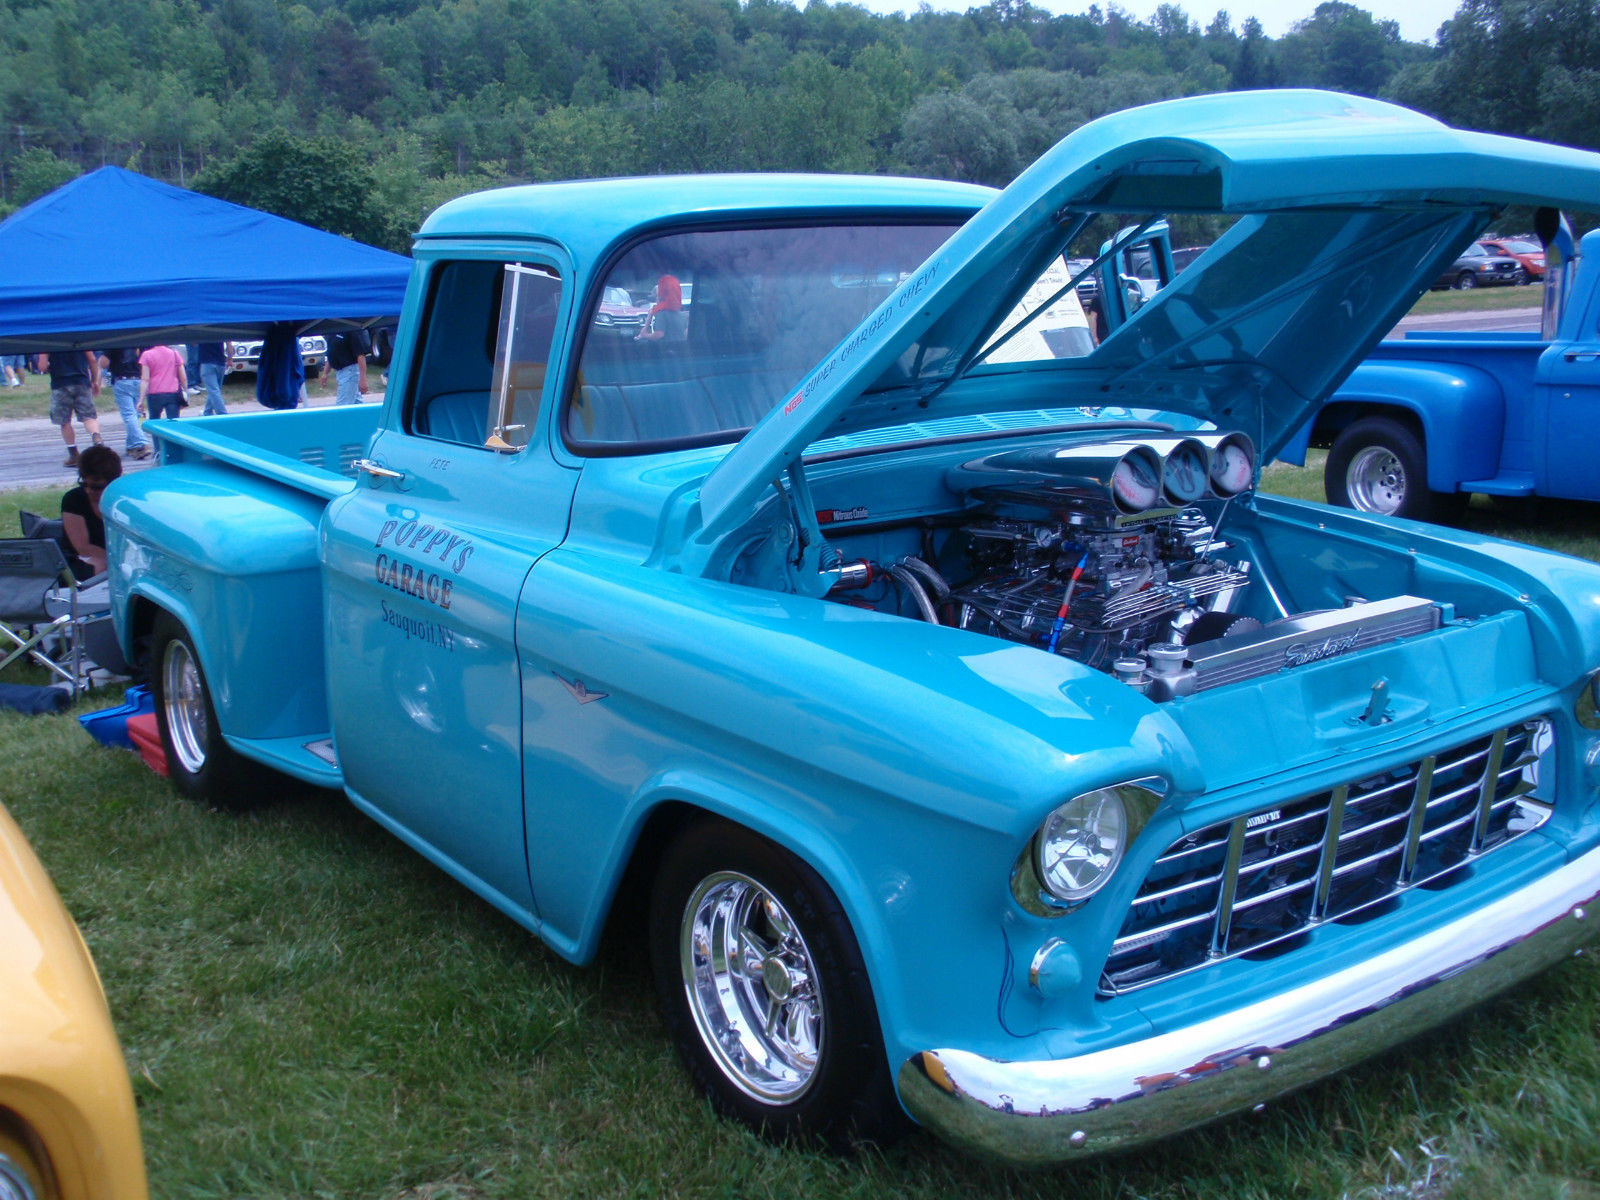 Chevy Pick Up Truck 1956 Supercharged Pro Street For Sale In Wiring Harness Chevrolet Other Pickups